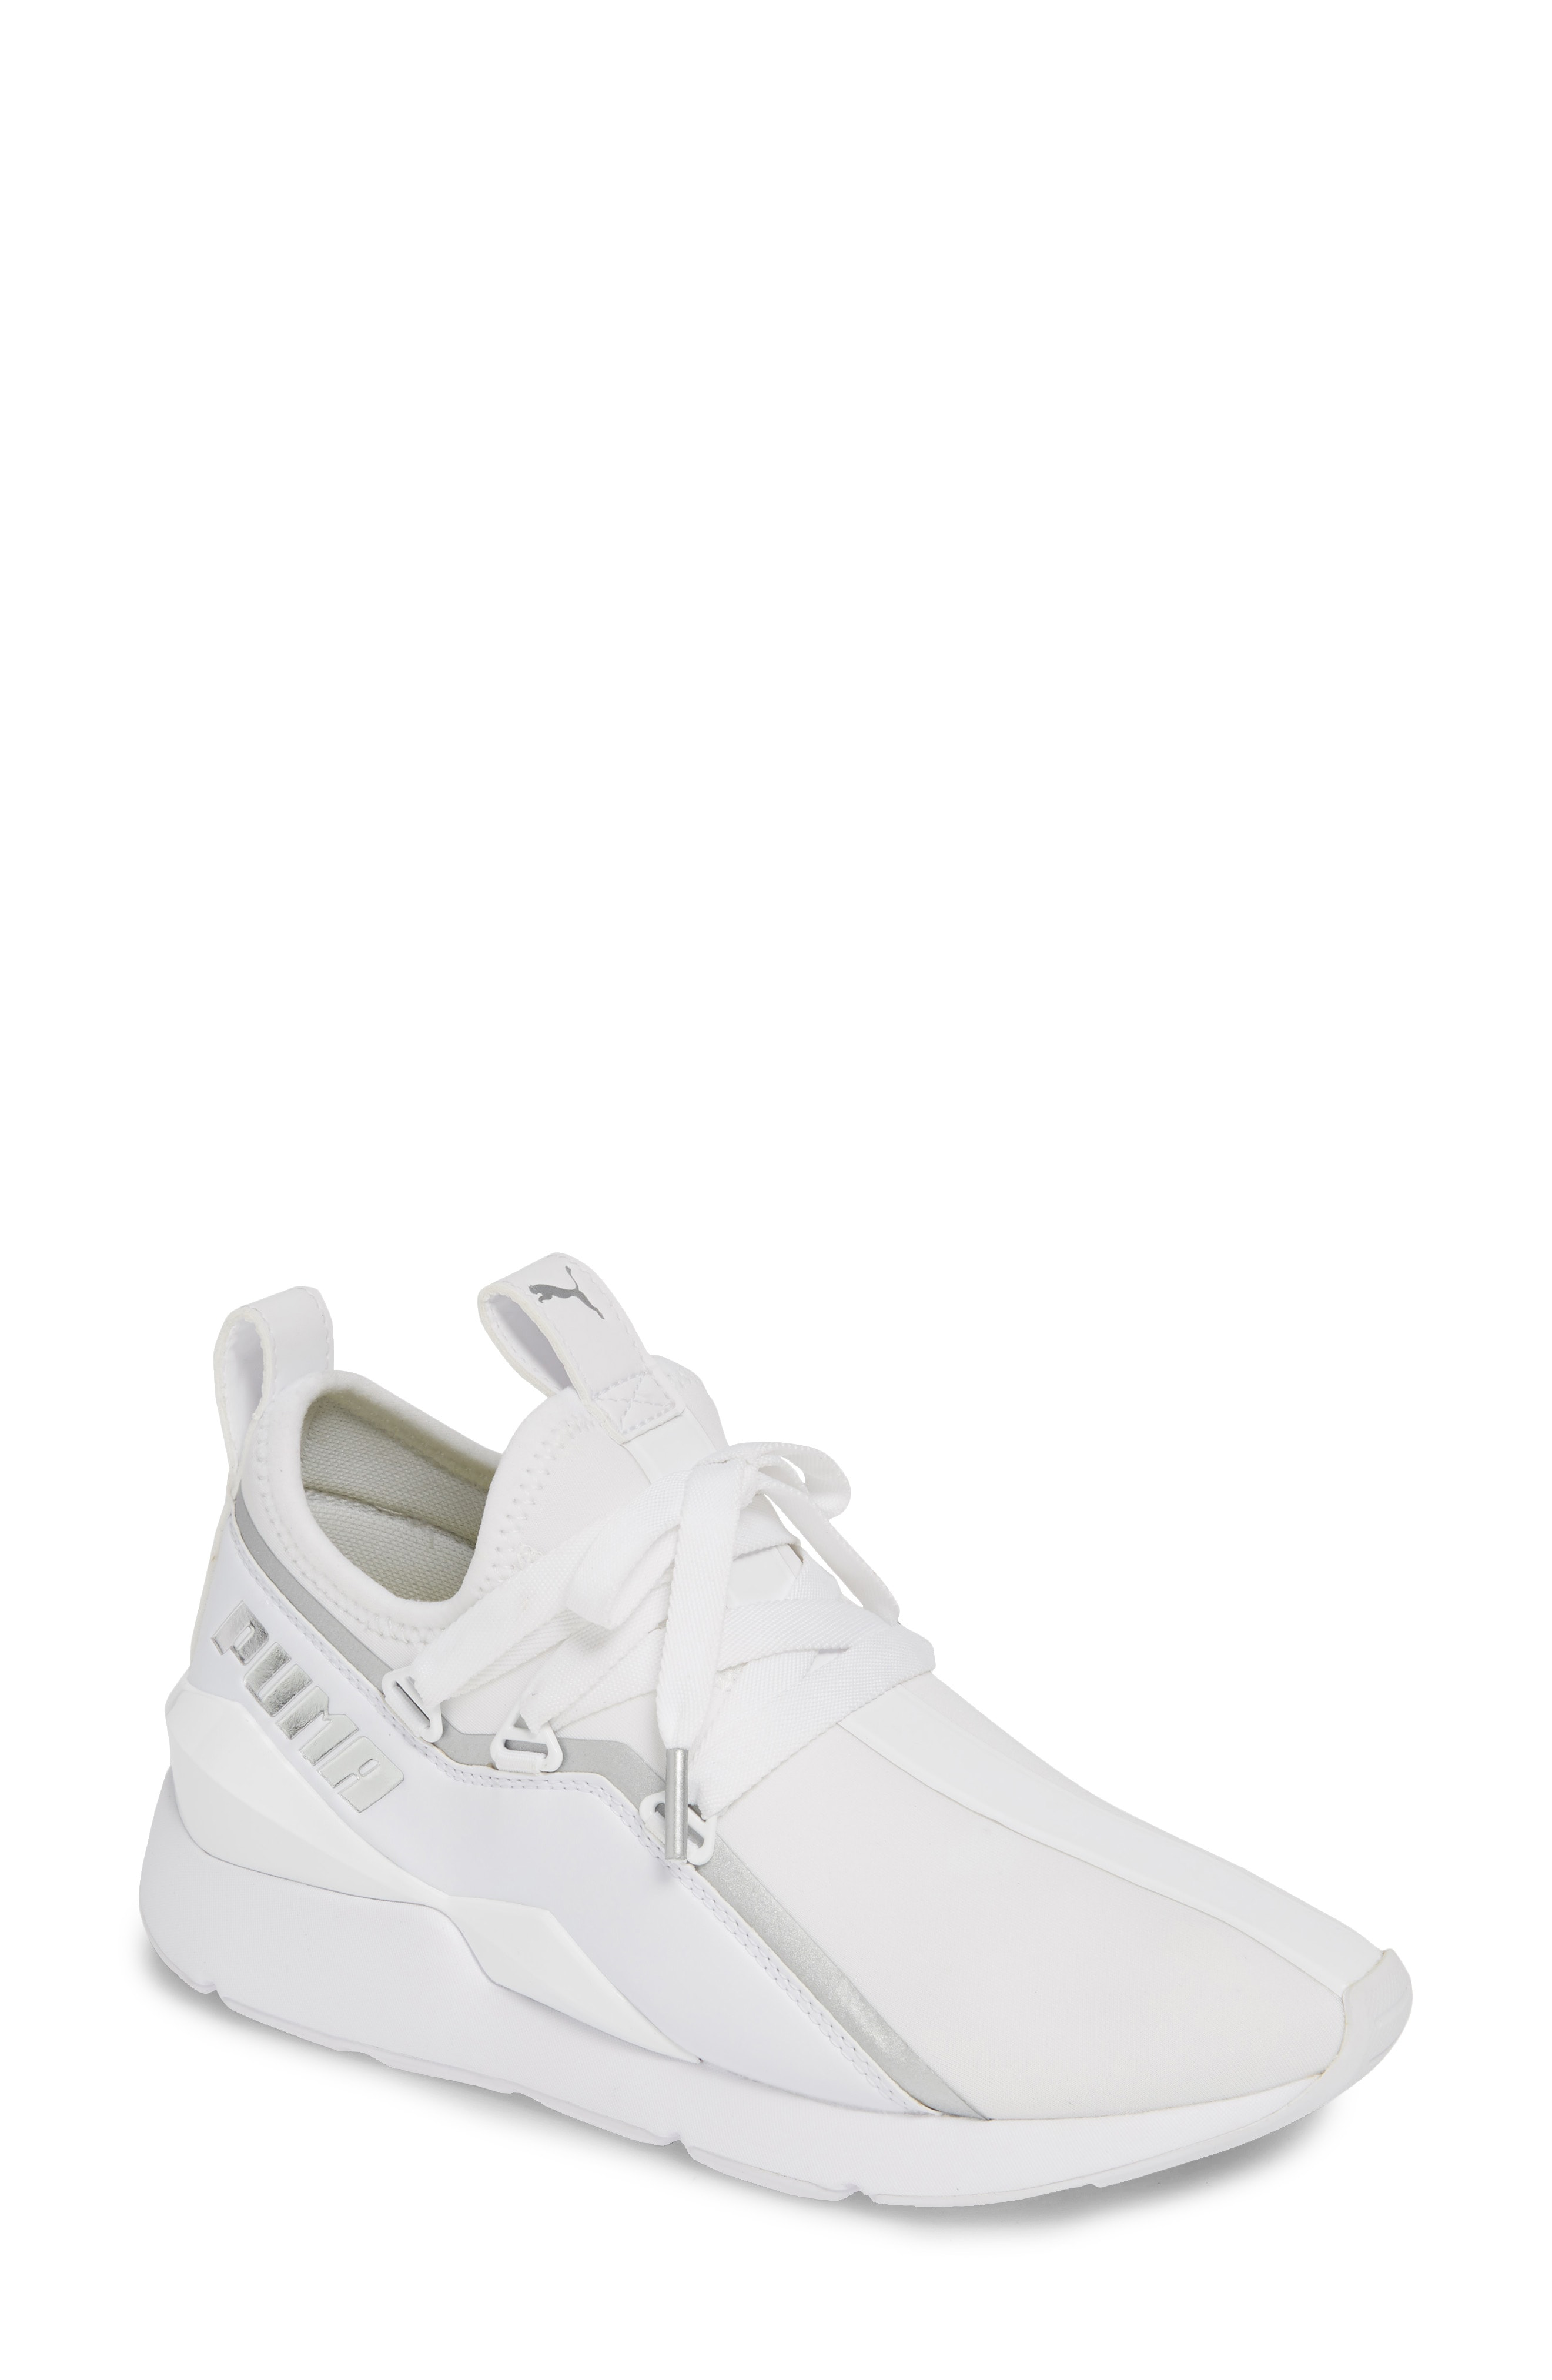 21f119b0d25 Angled overlays and a ridged heel cup bring new geometries to PUMA s  next-generation Muse sneaker that sports a broad lacing system and more  streamlined ...